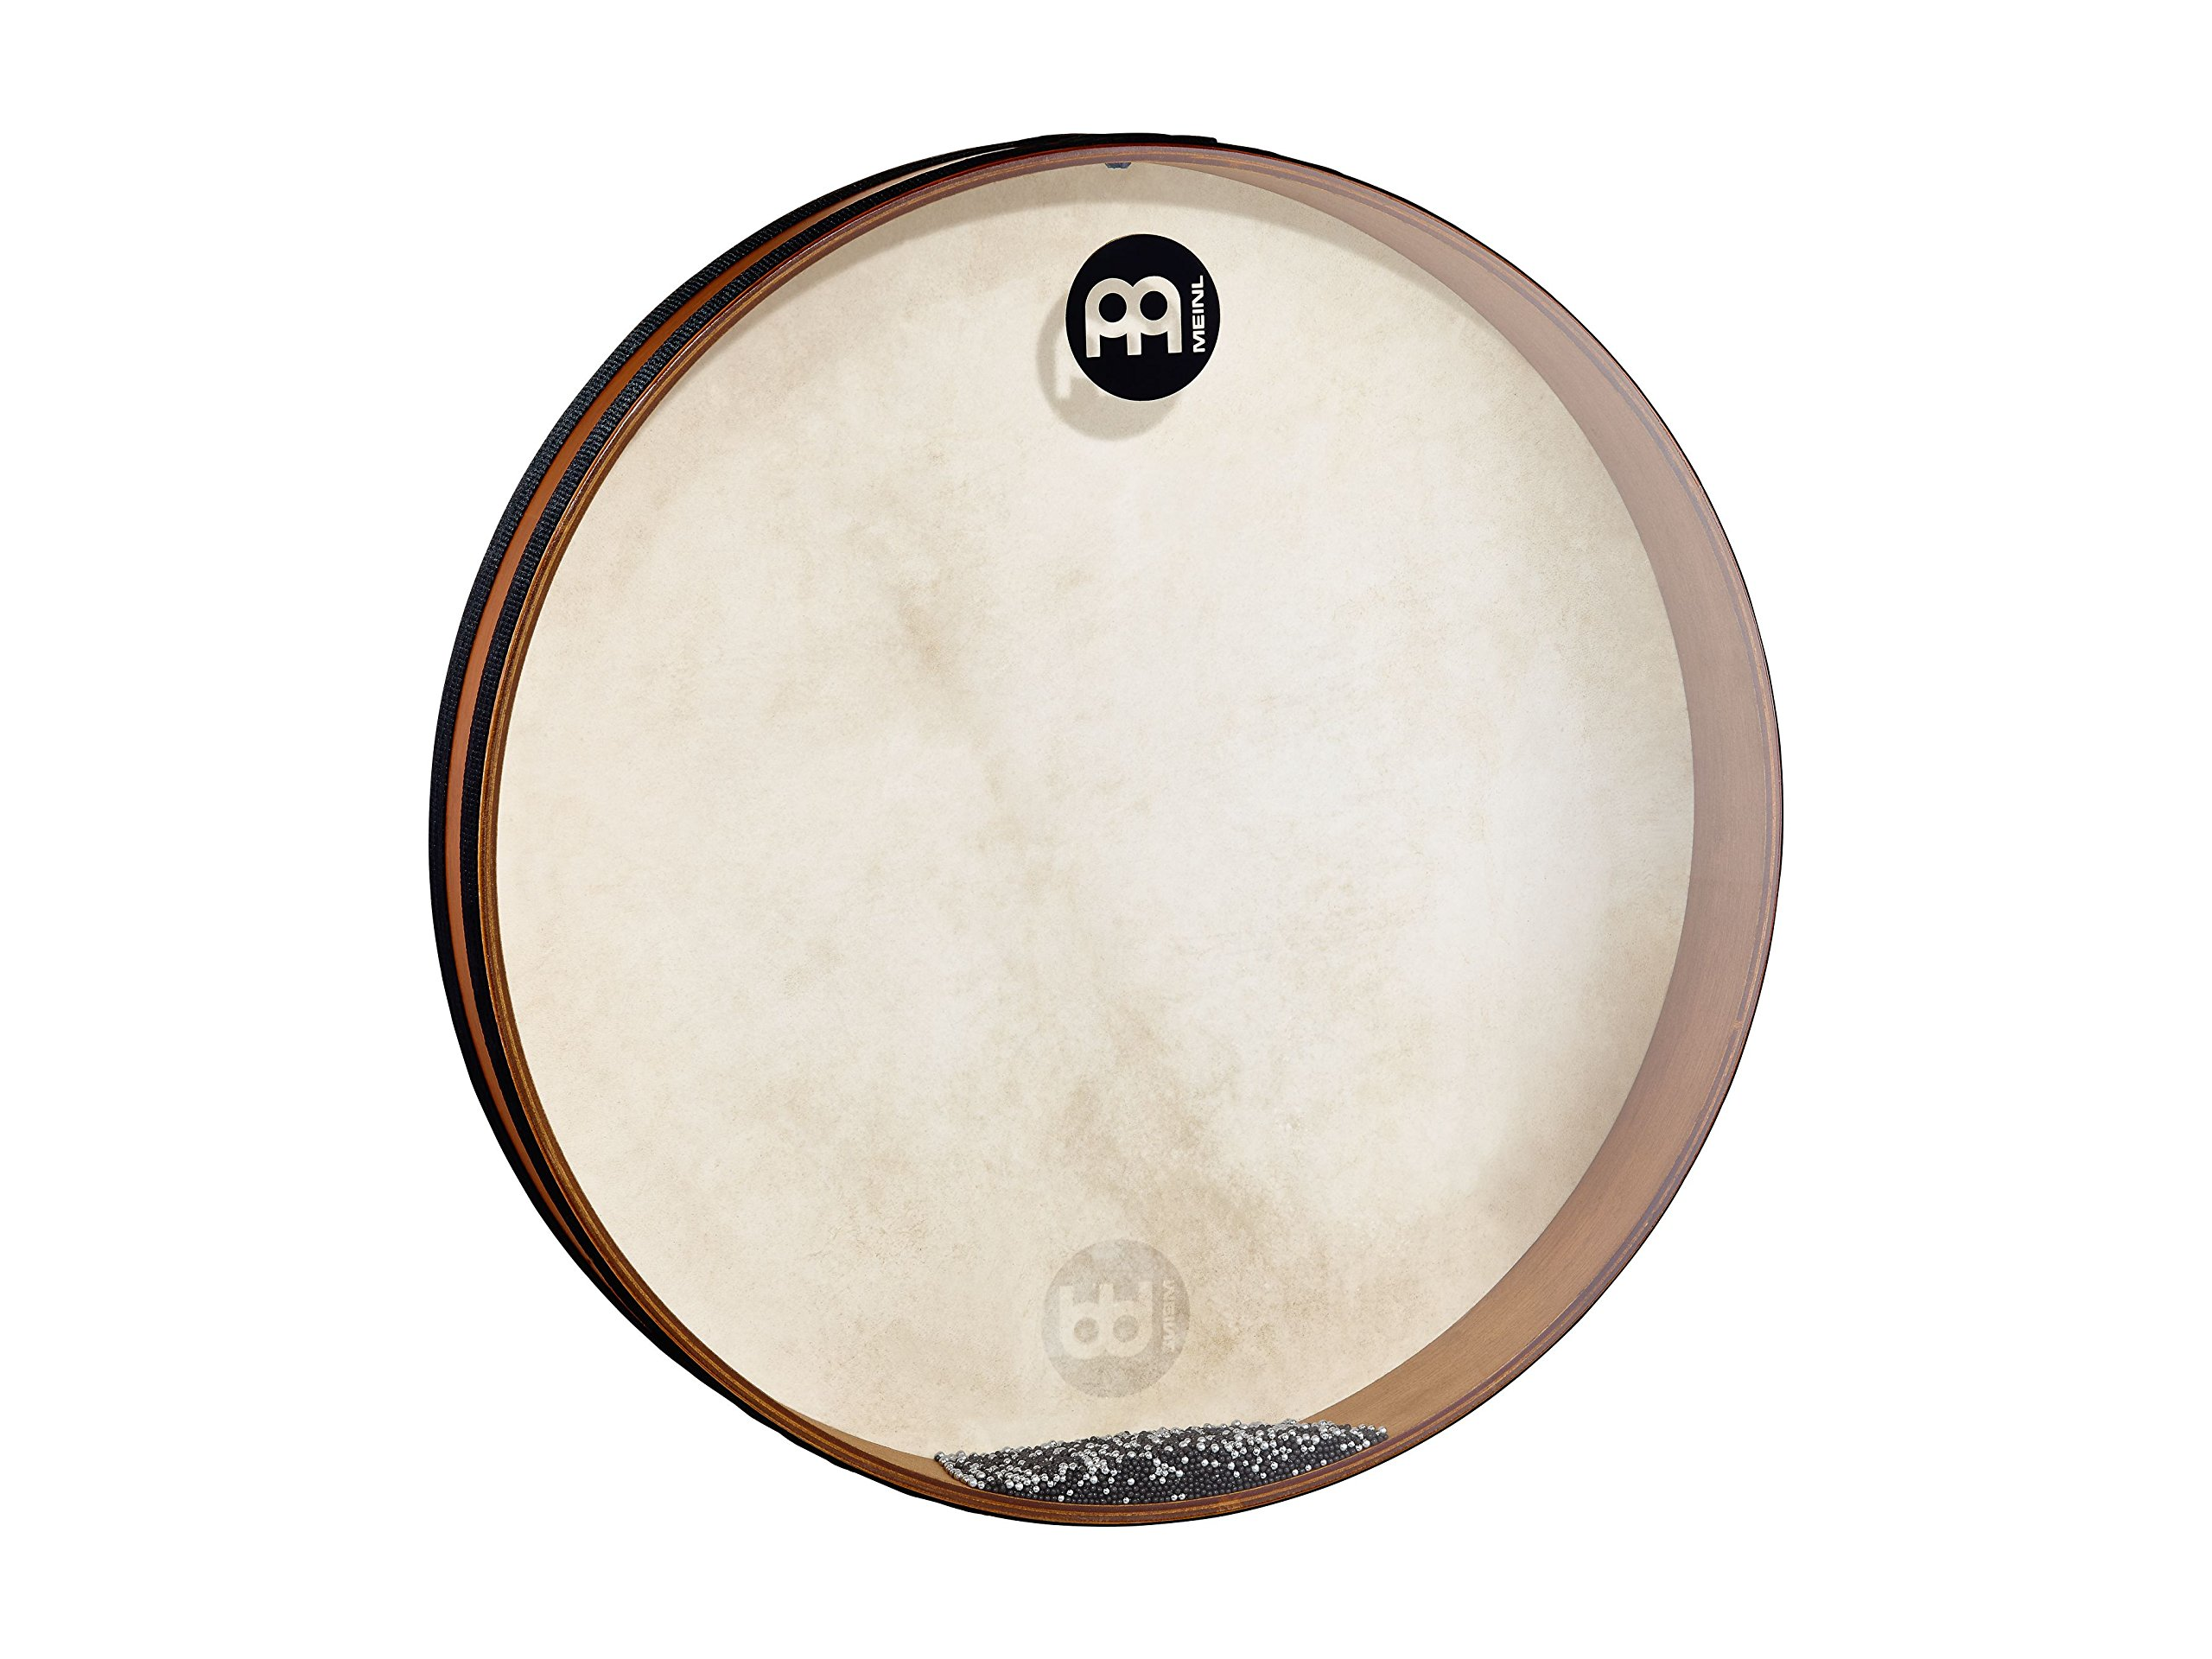 Meinl Percussion 20'' Sea Drum with Fillable Sealing Port and Hardwood Shell - NOT MADE IN CHINA - Goat Skin Head, For Ocean Sound Effect, 2-YEAR WARRANTY (FD20SD) by Meinl Percussion